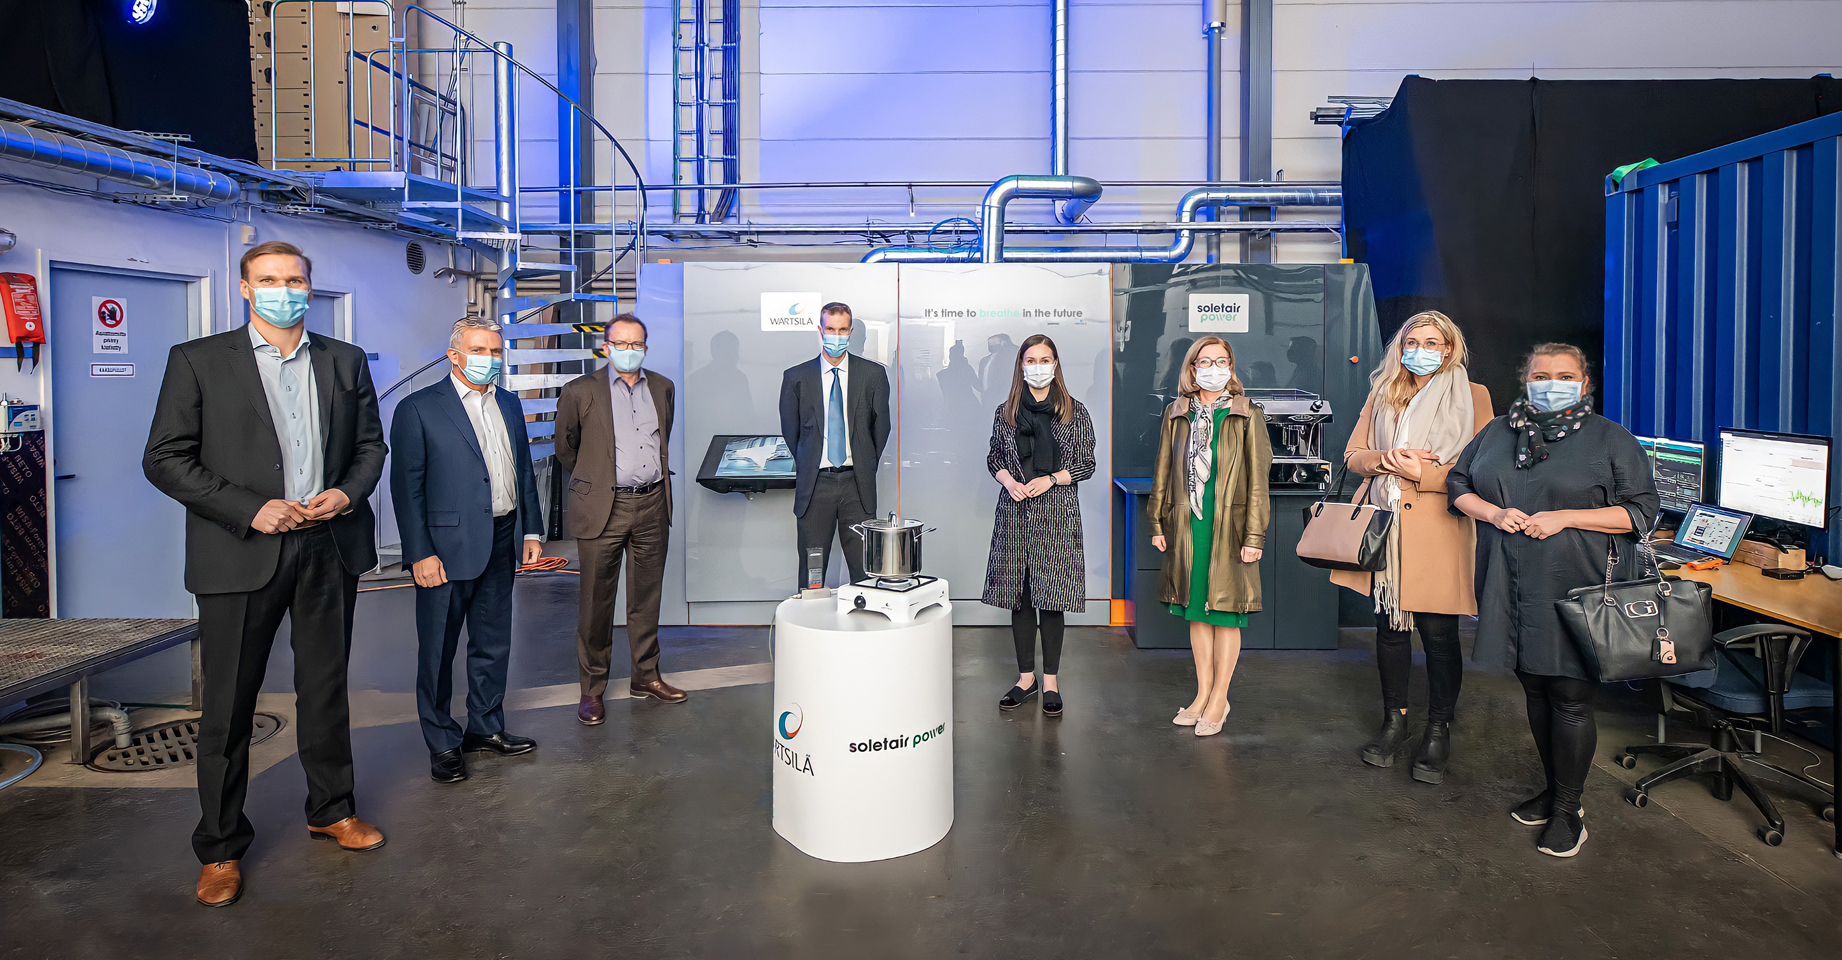 8 people standing and Sanna Marin Visits Soletair Power Factory